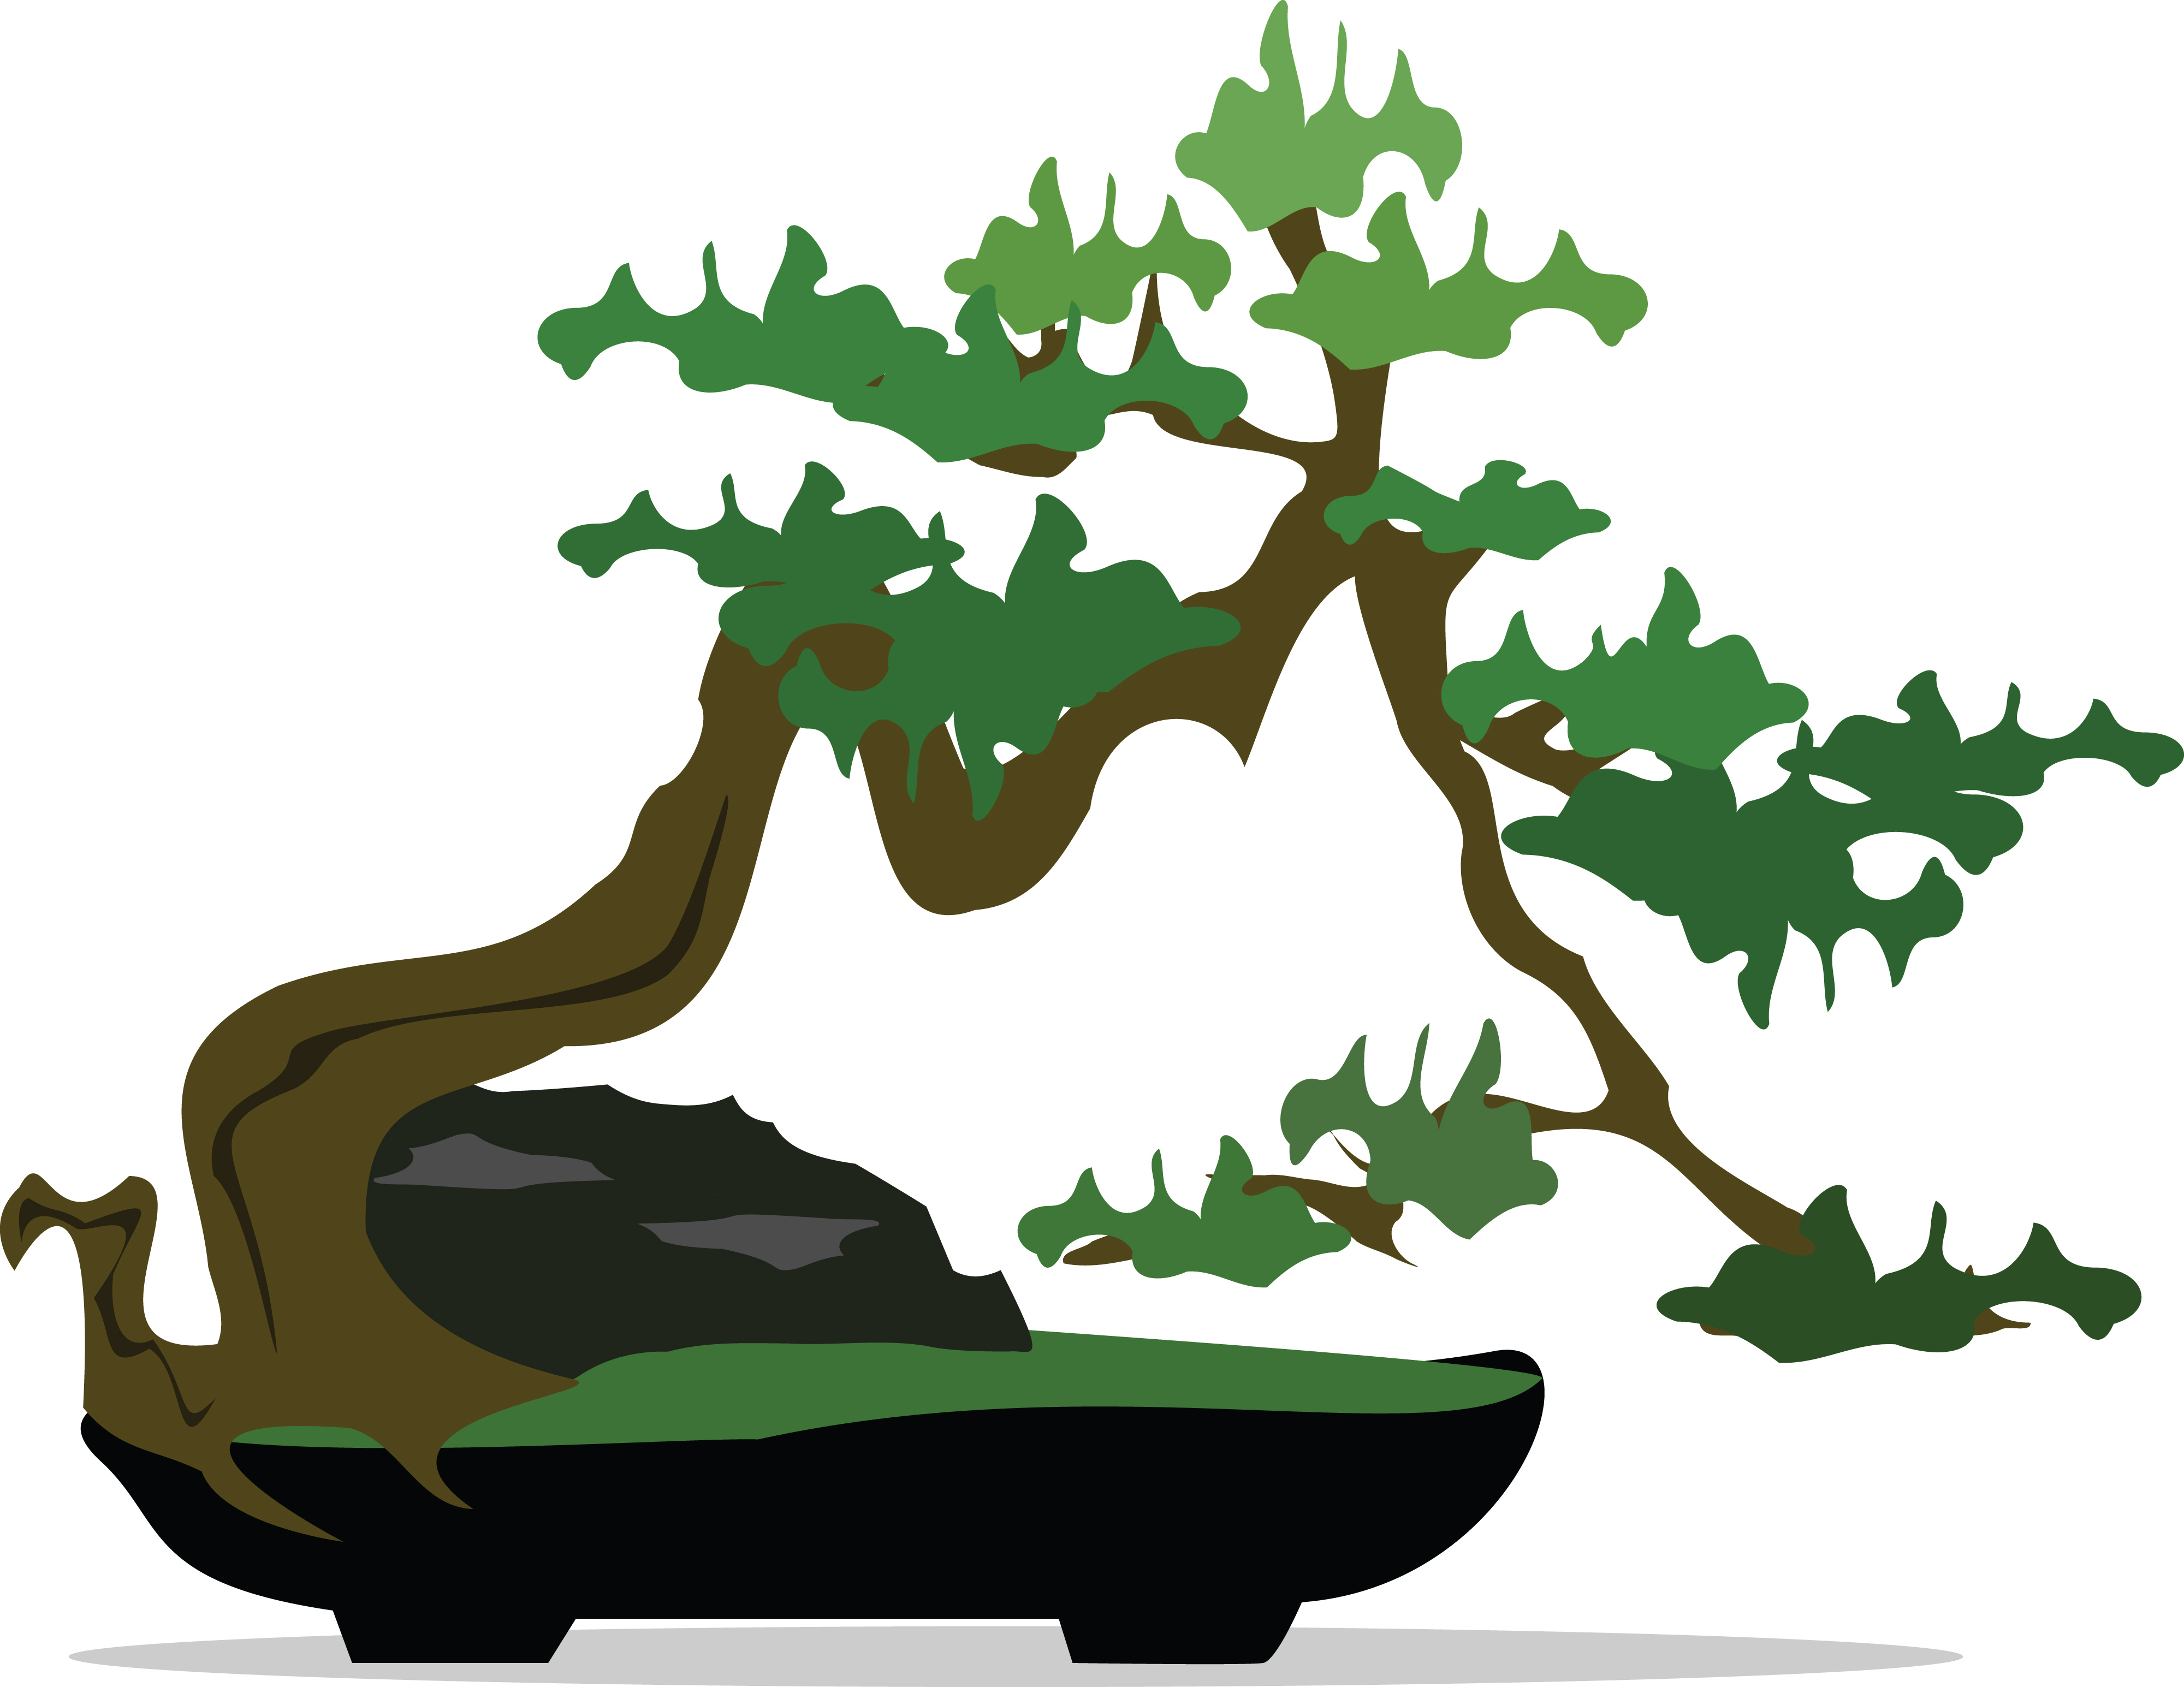 Free Clipart of a Bonsai Tree.